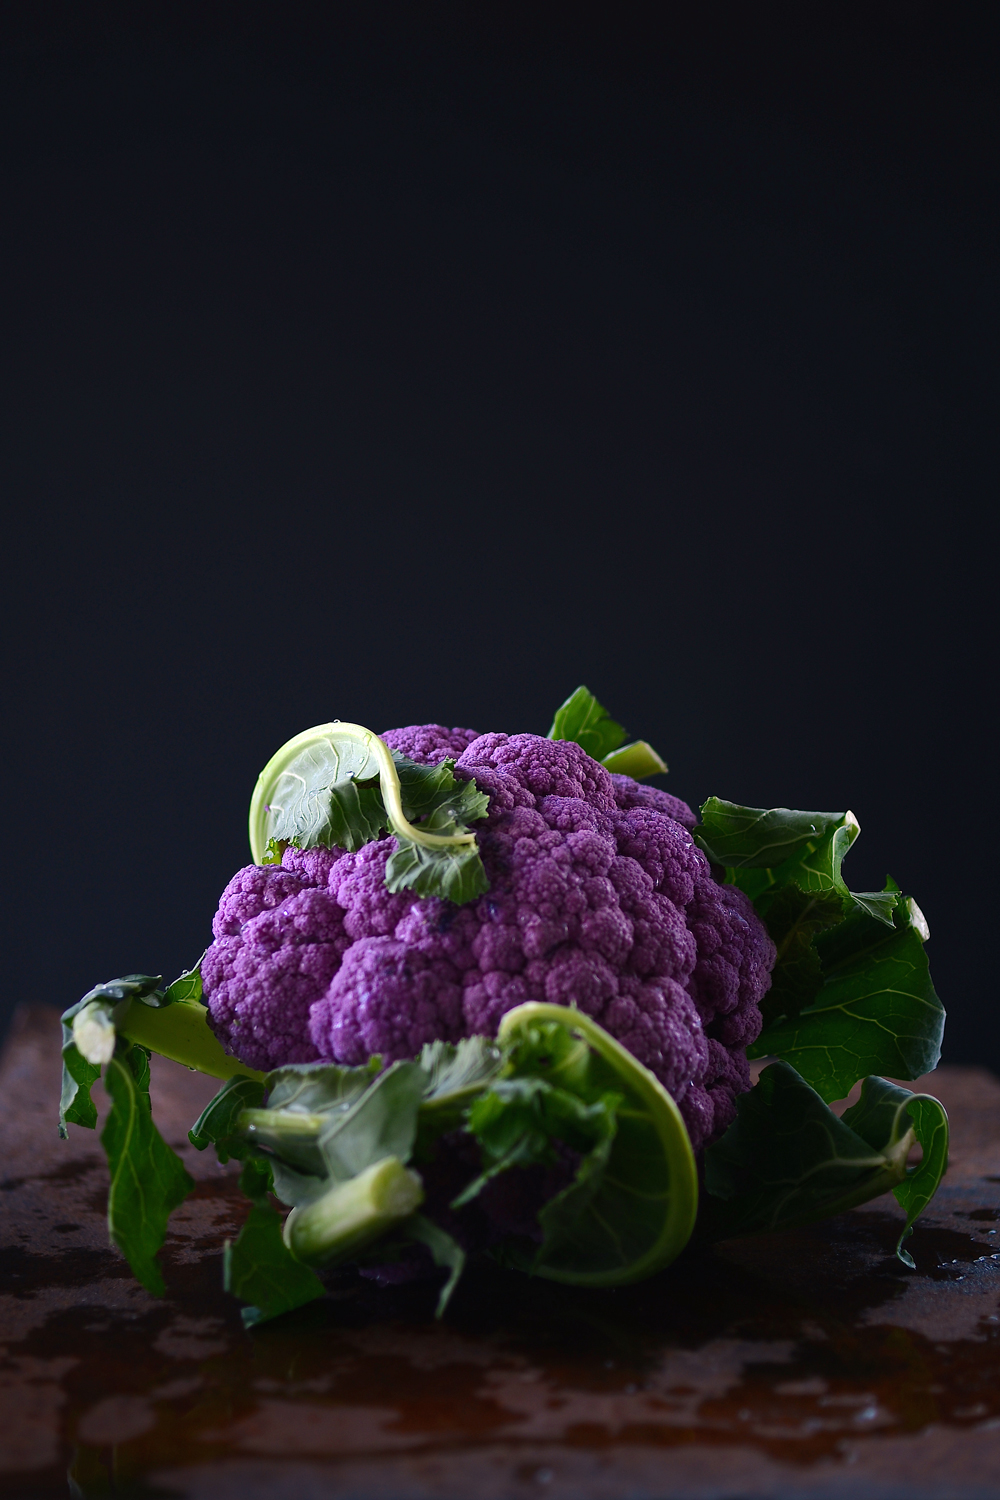 vb-rococco-purple-cauliflower.jpg